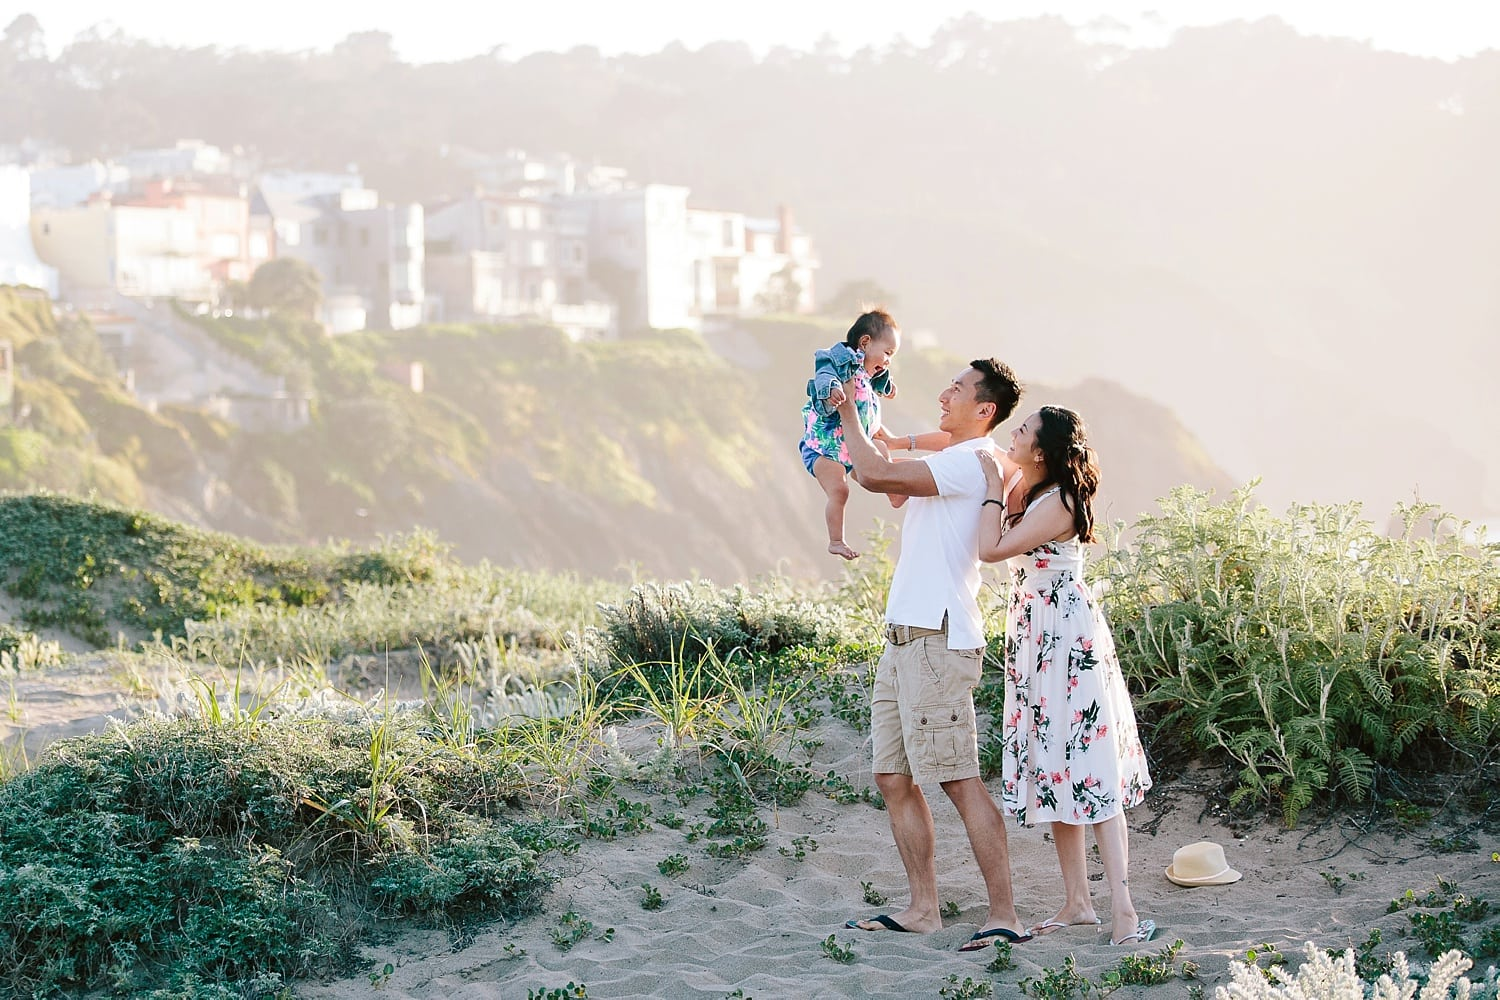 Beach Family Photography Session in San Francisco